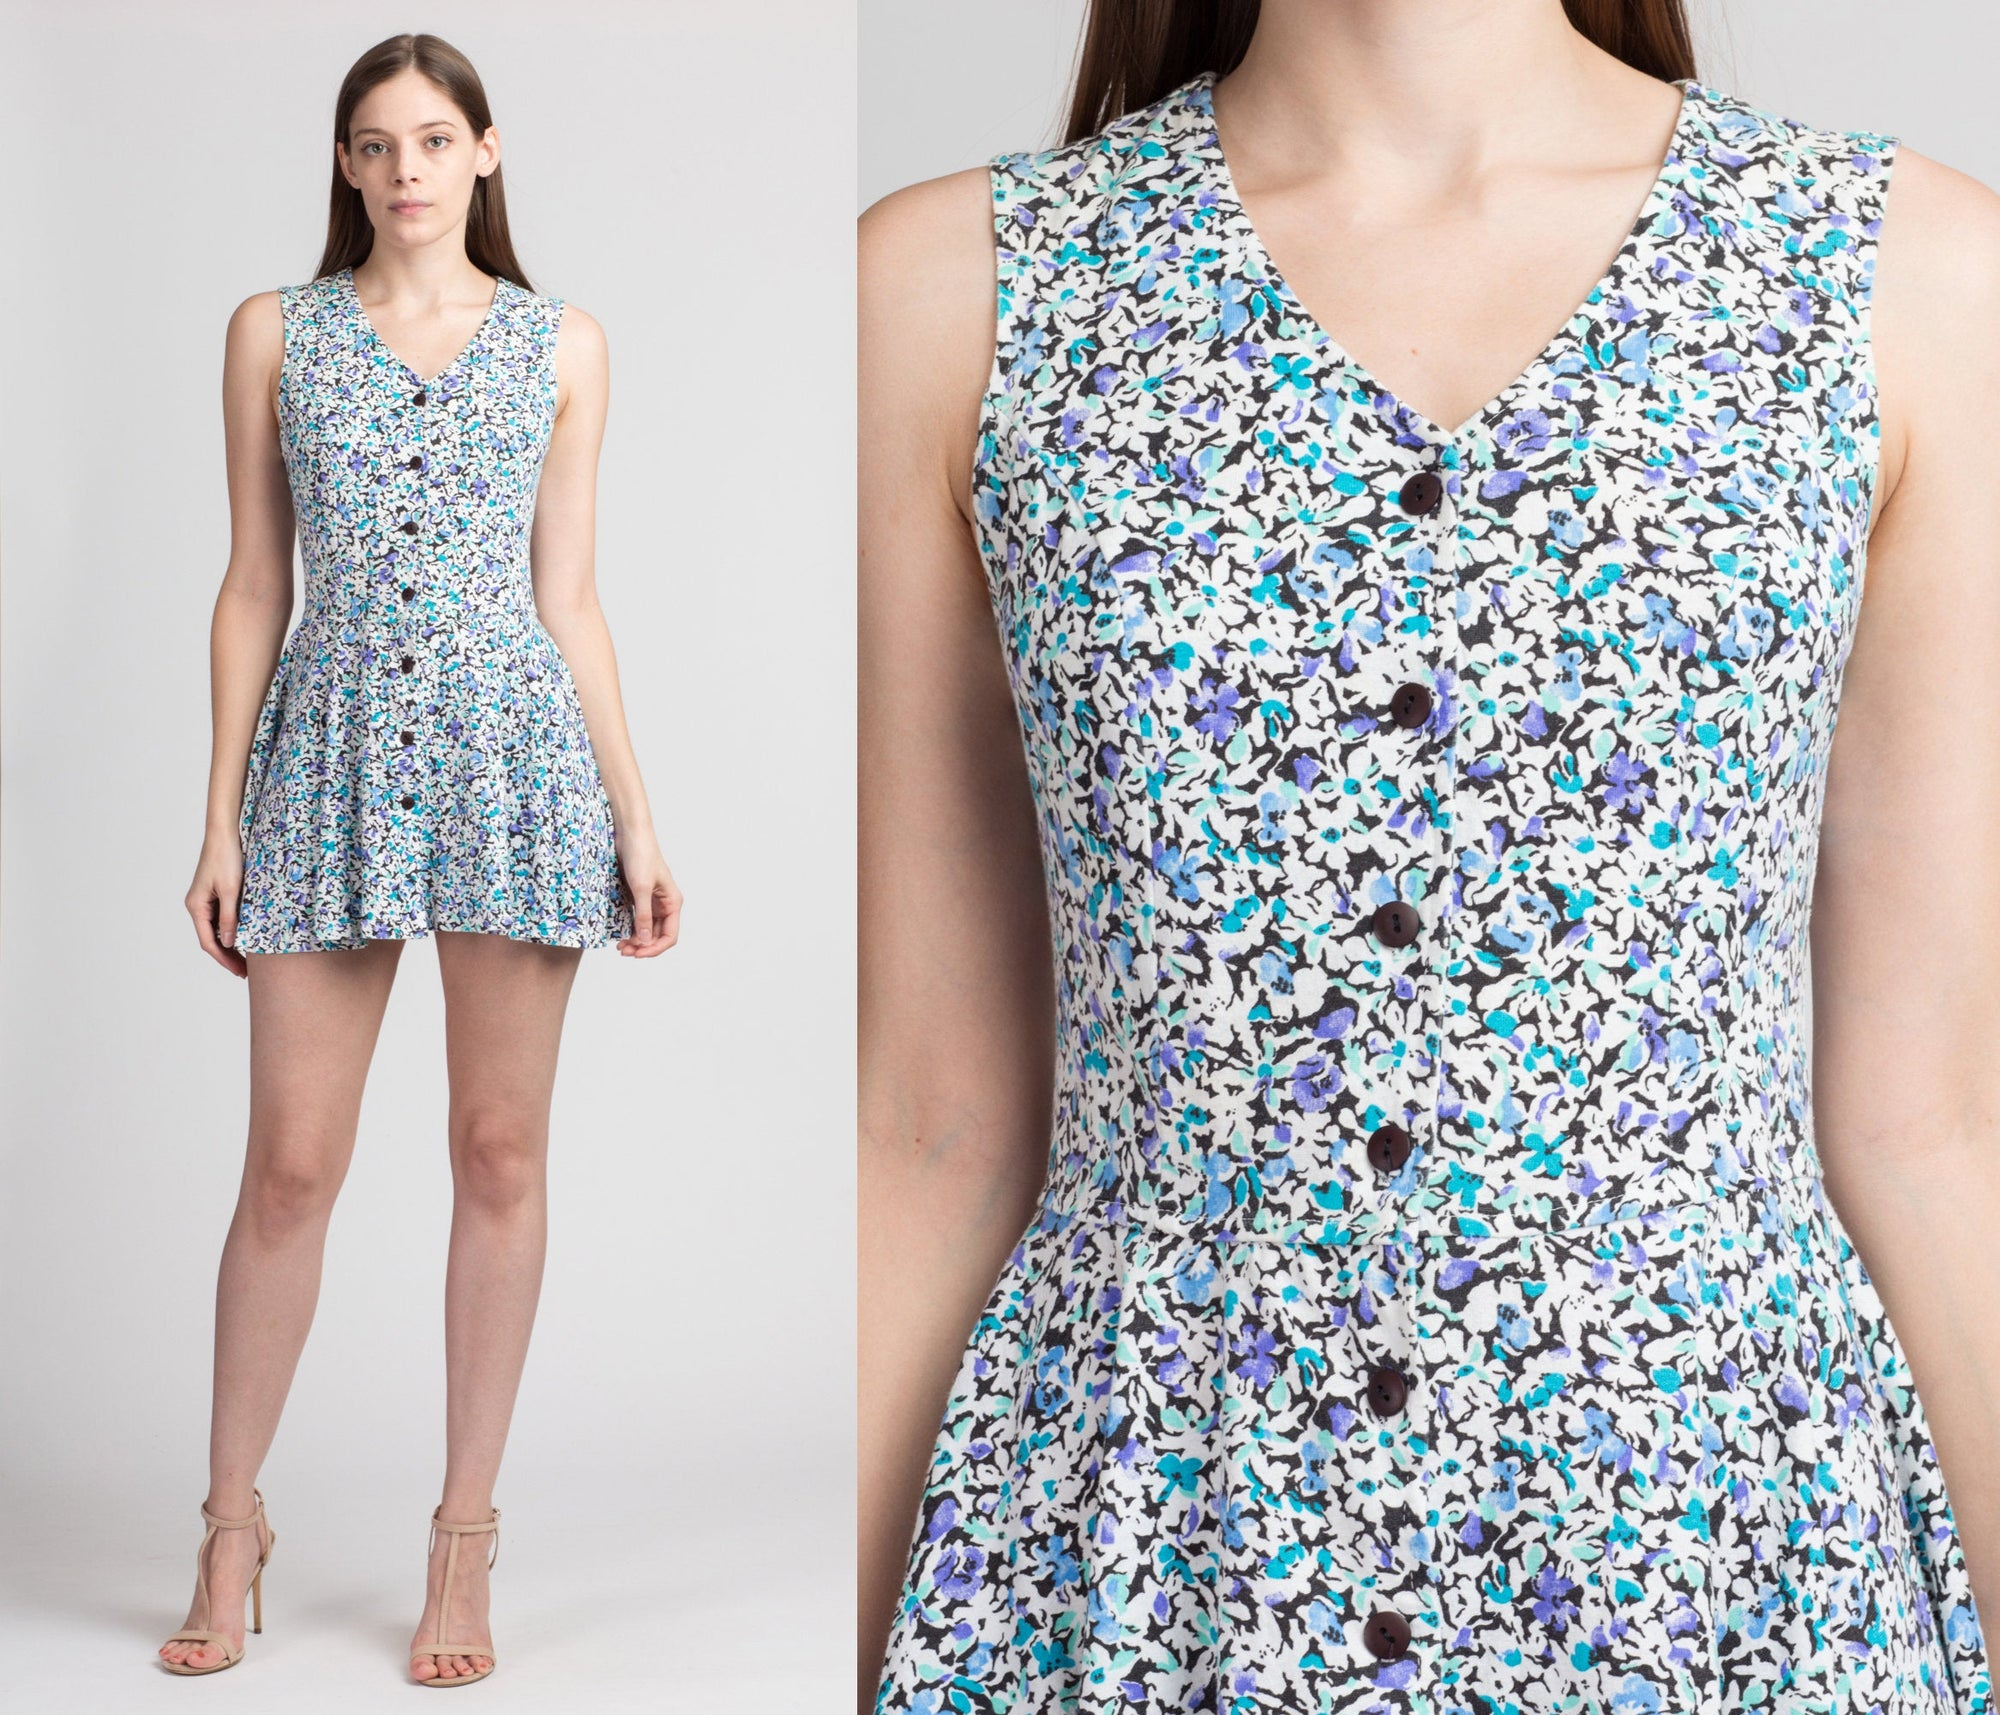 90s Floral Micro Mini Dress - Petite Small to Medium